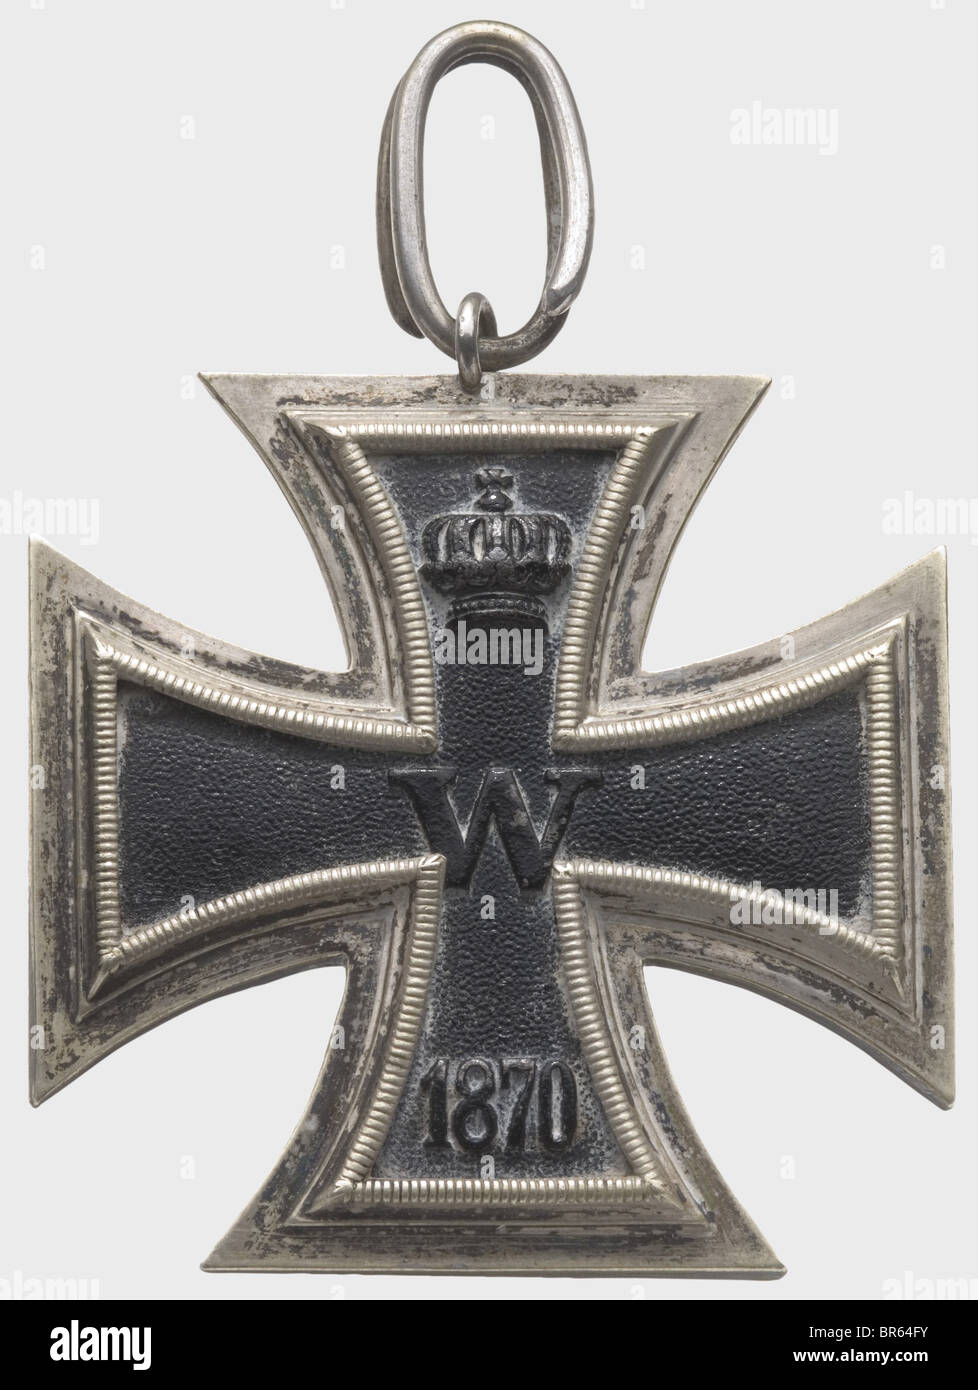 Iron Cross of 1870 - Grand Cross., Blackened iron core in a silver frame, suspension ring on transverse eyelet. - Stock Image